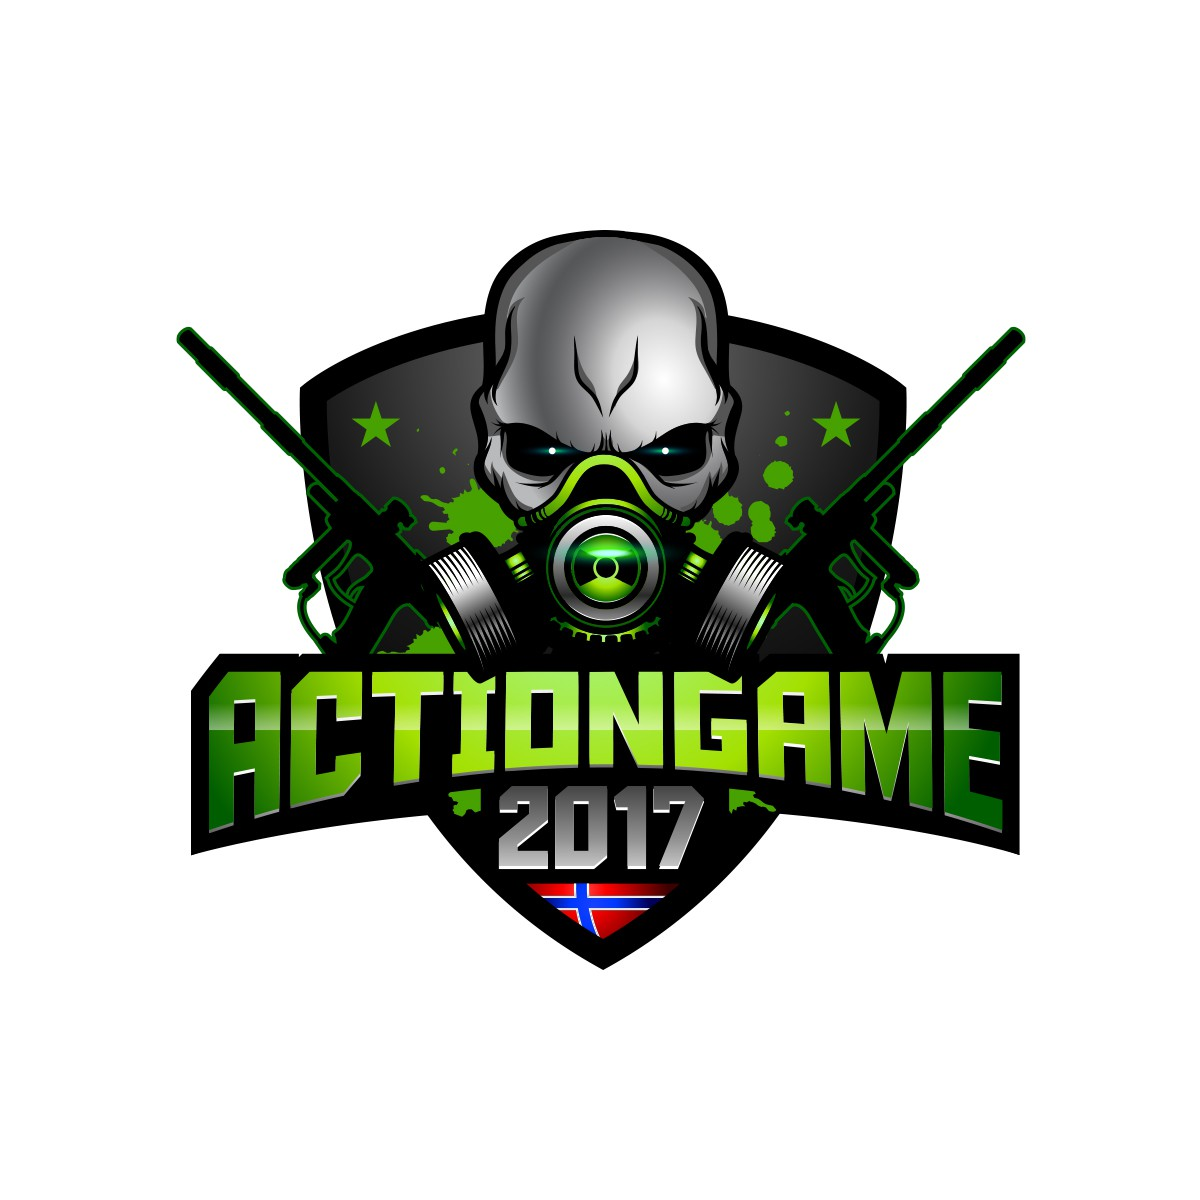 Actiongame 2017